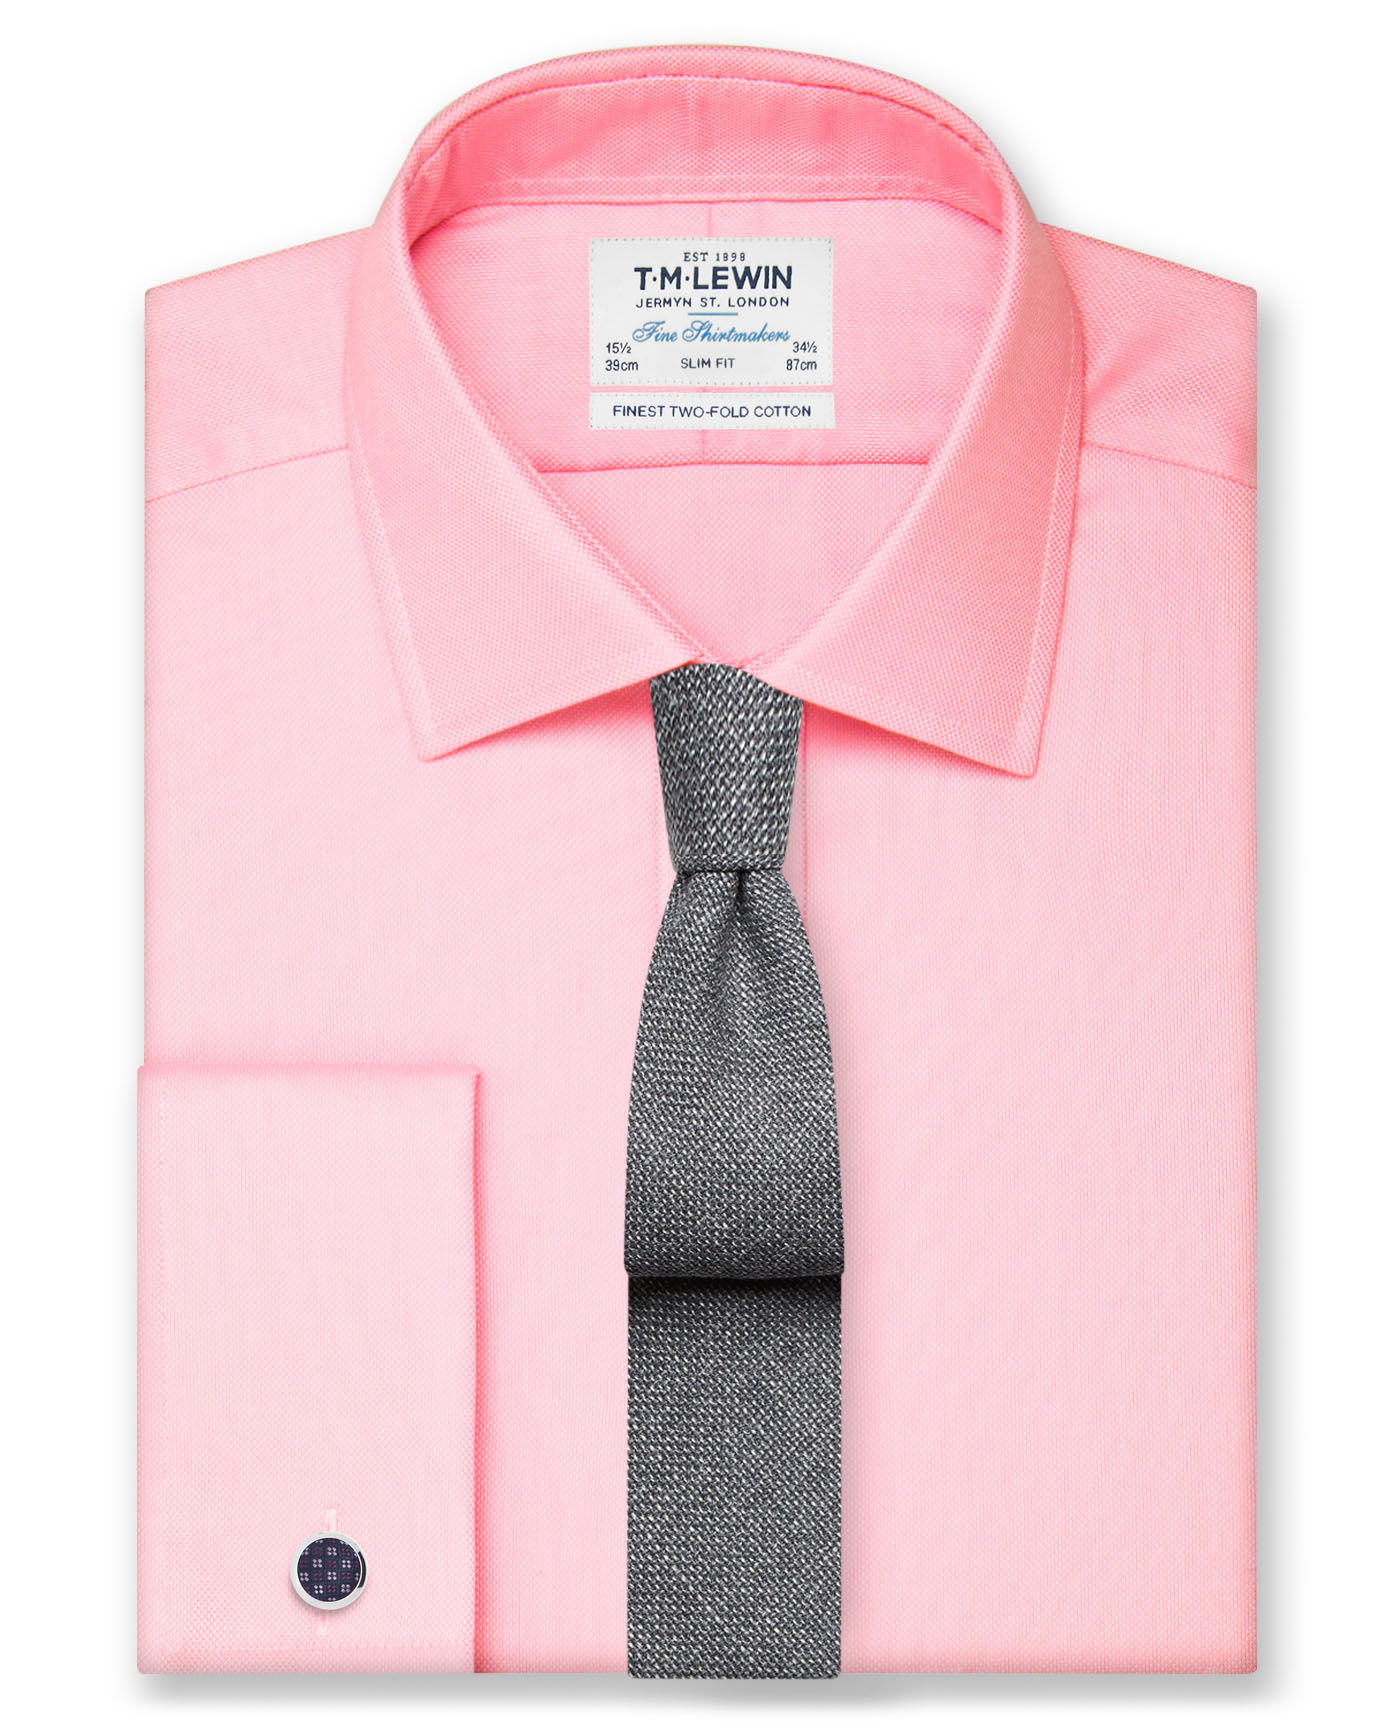 T.M.Lewin Slim Fit Pink Oxford Double Cuff Shirt